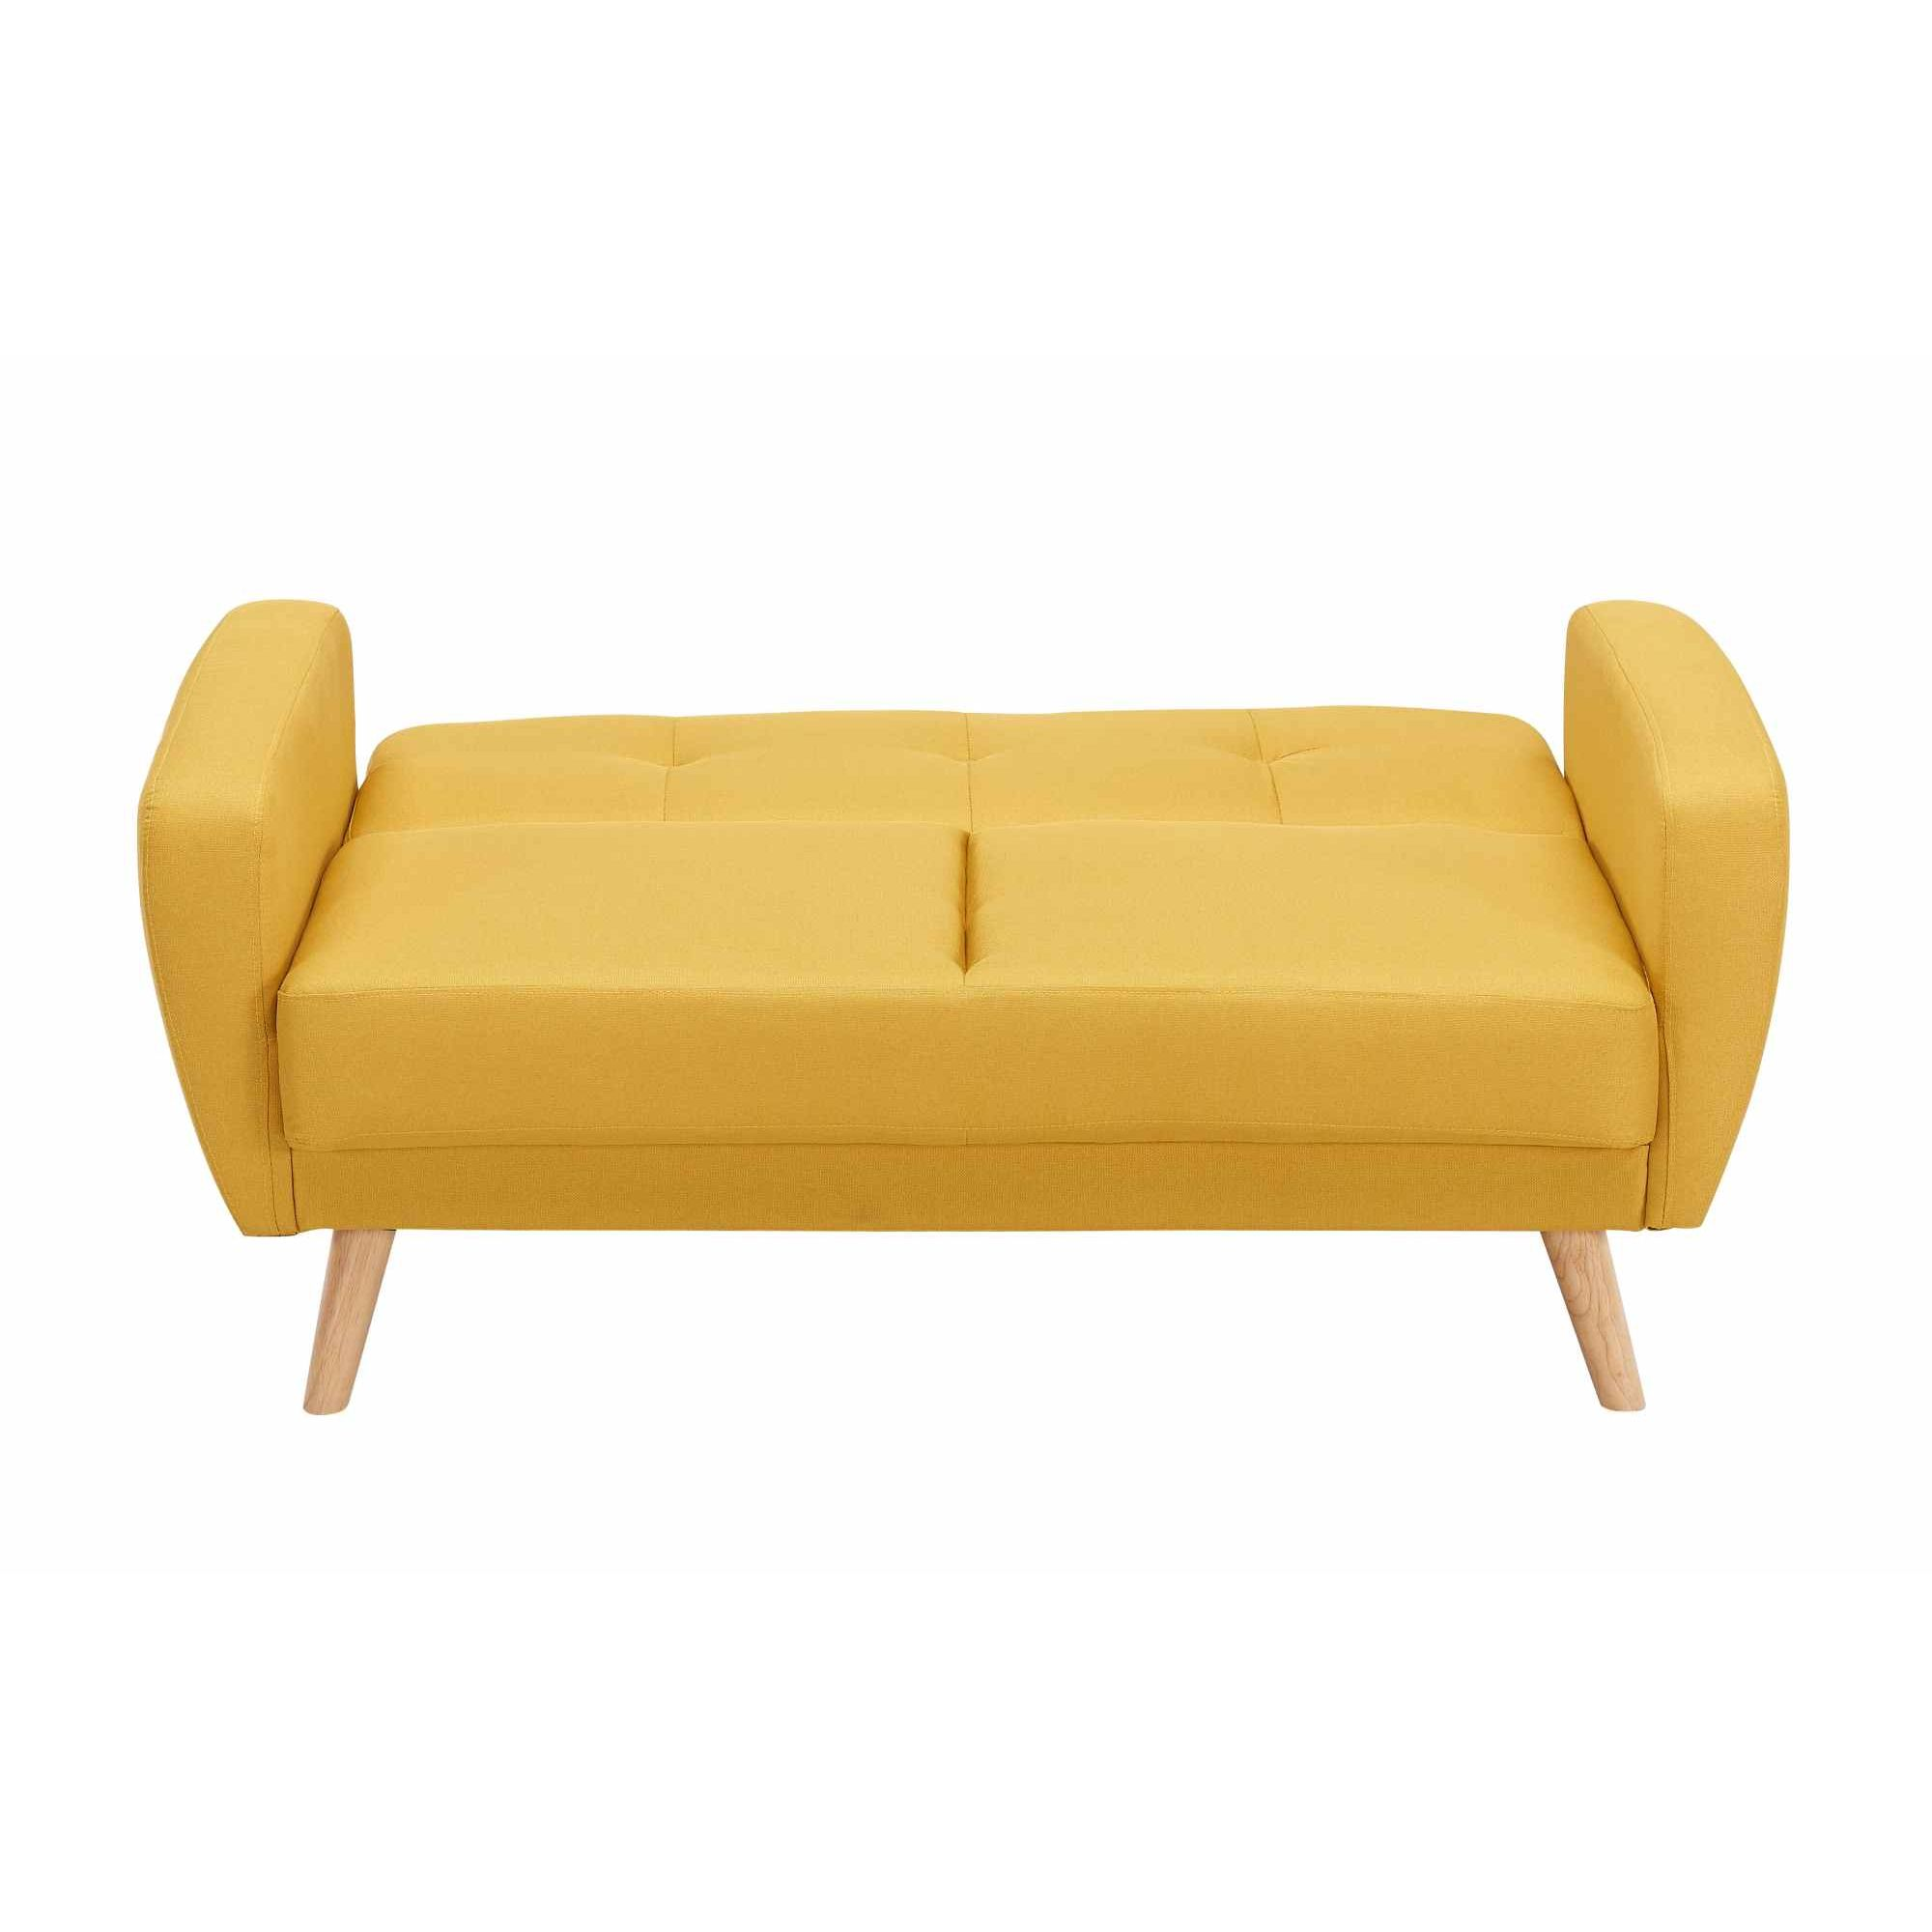 Deco Scandinave Jaune Deco In Paris Canape 2 Places Convertible Scandinave